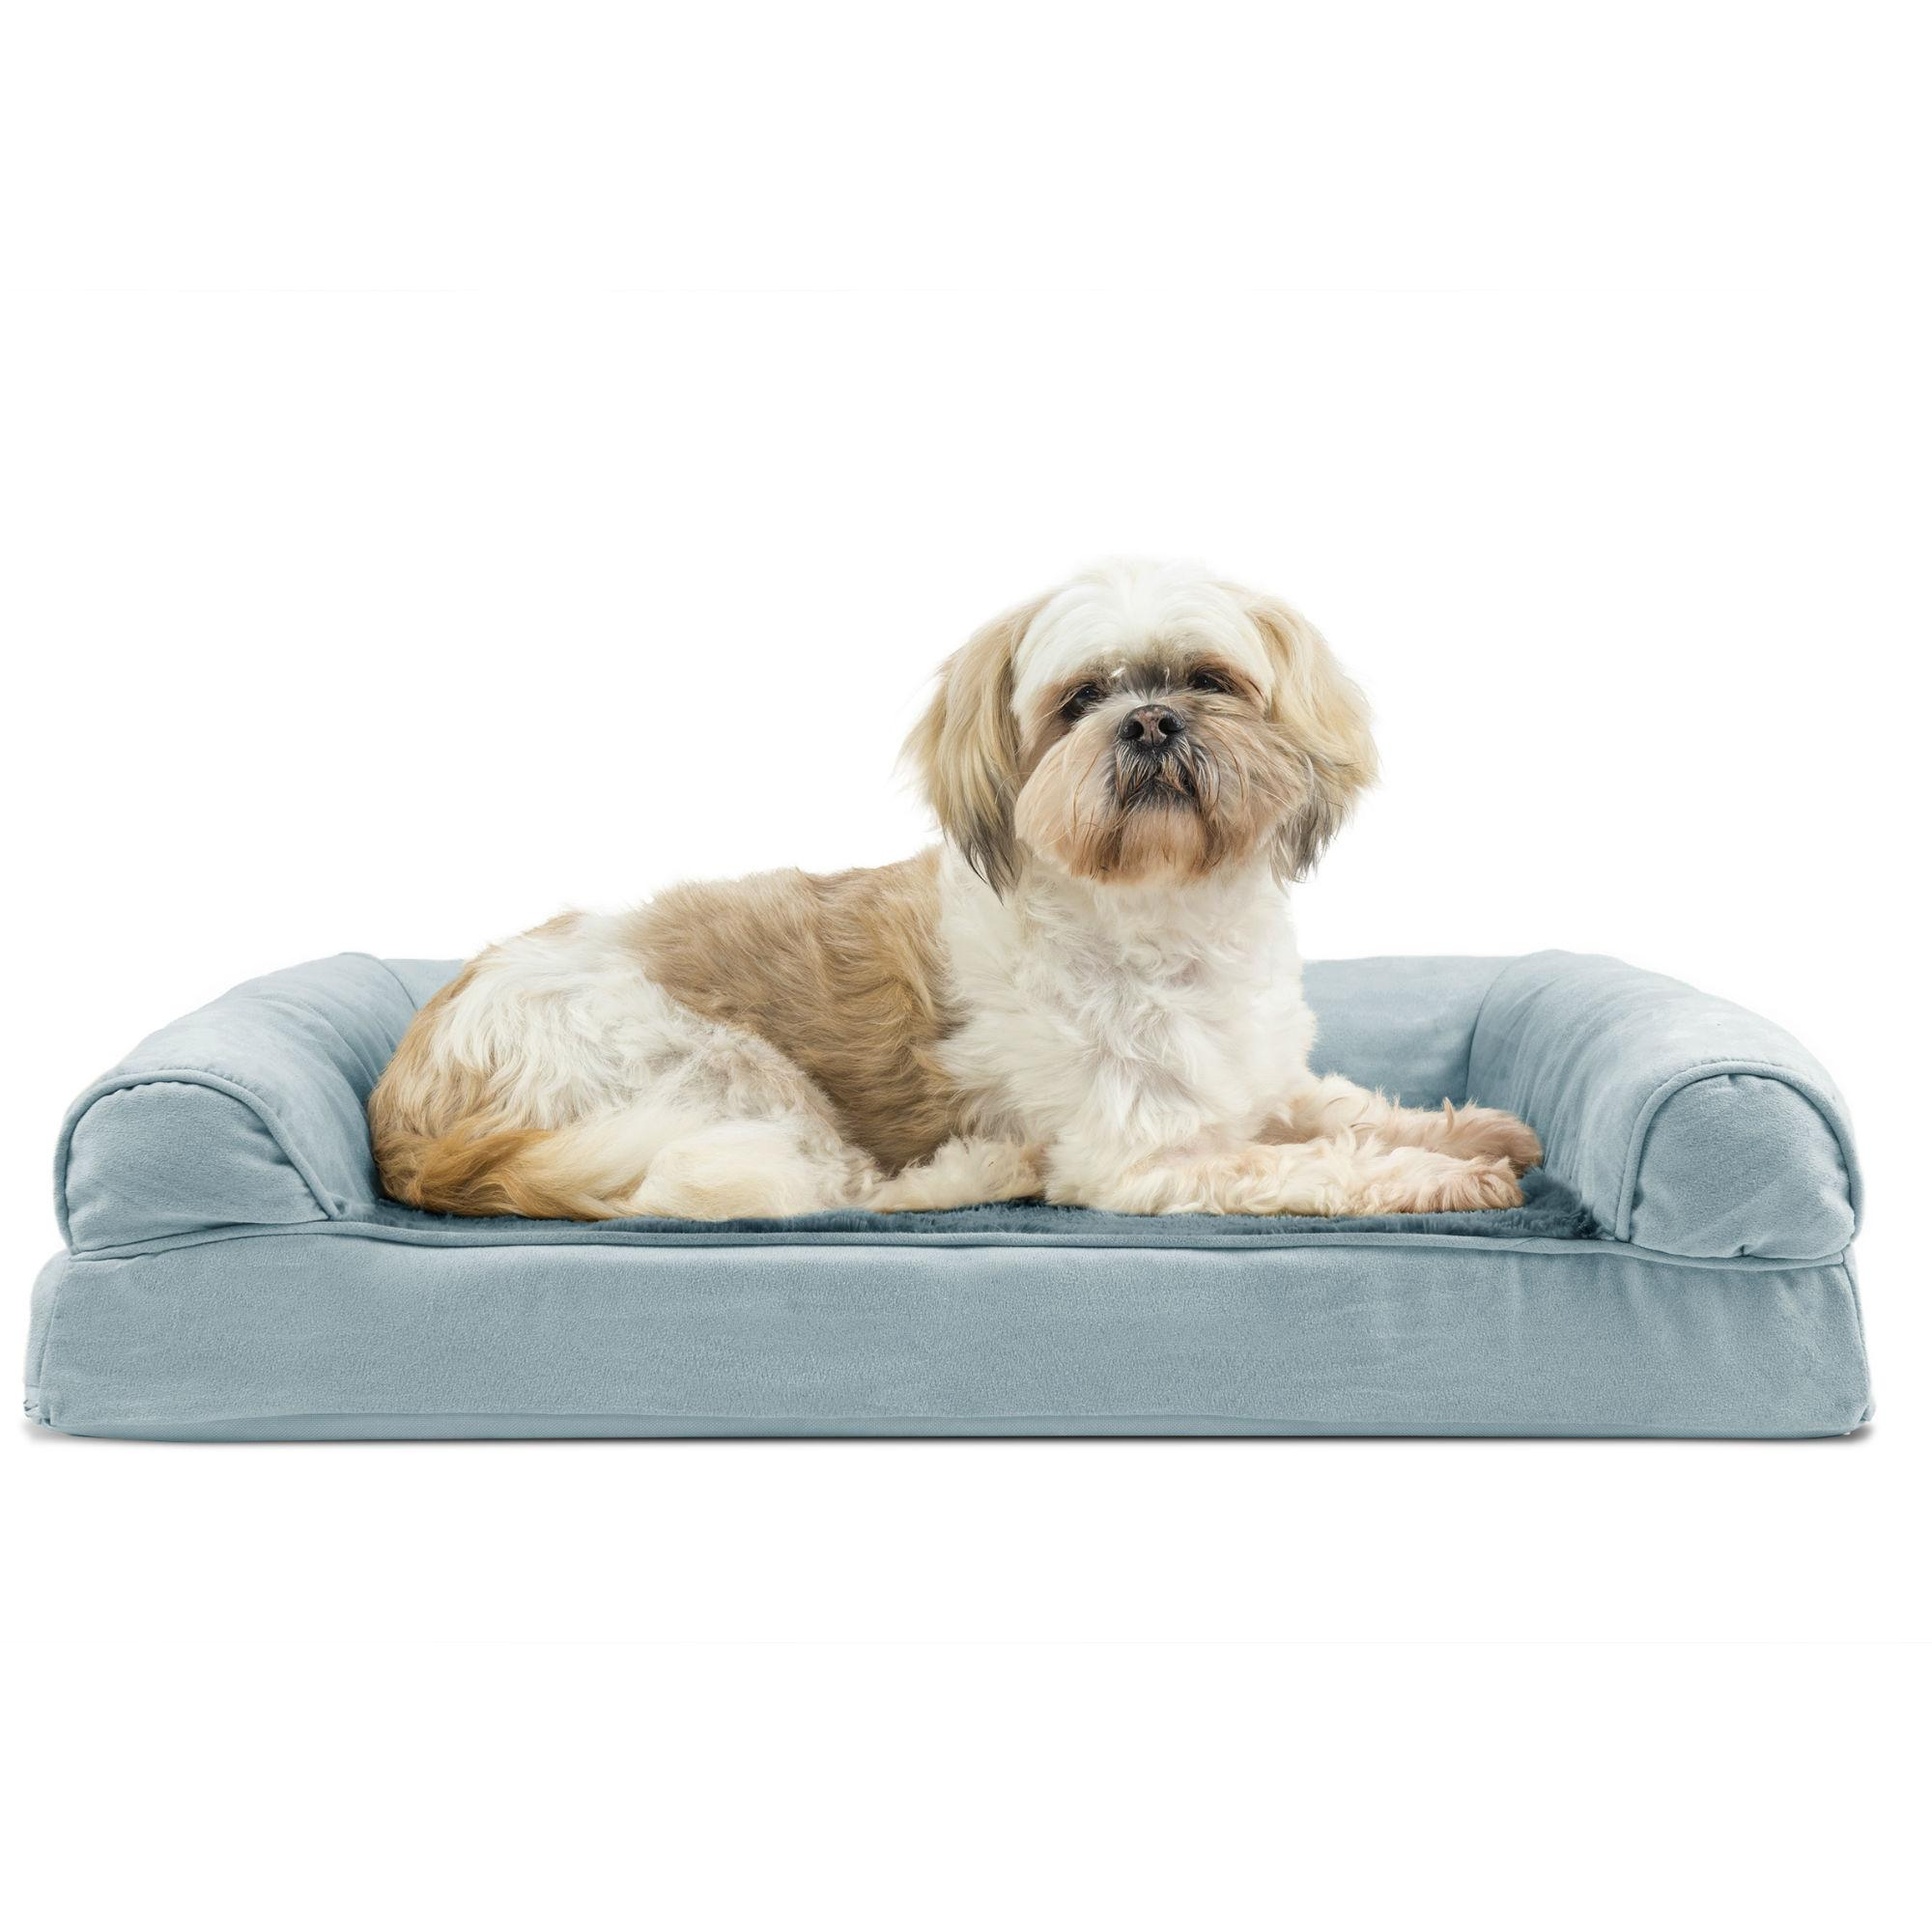 Furhaven Plush & Suede Orthopedic Sofa Pet Bed - Deep Pool